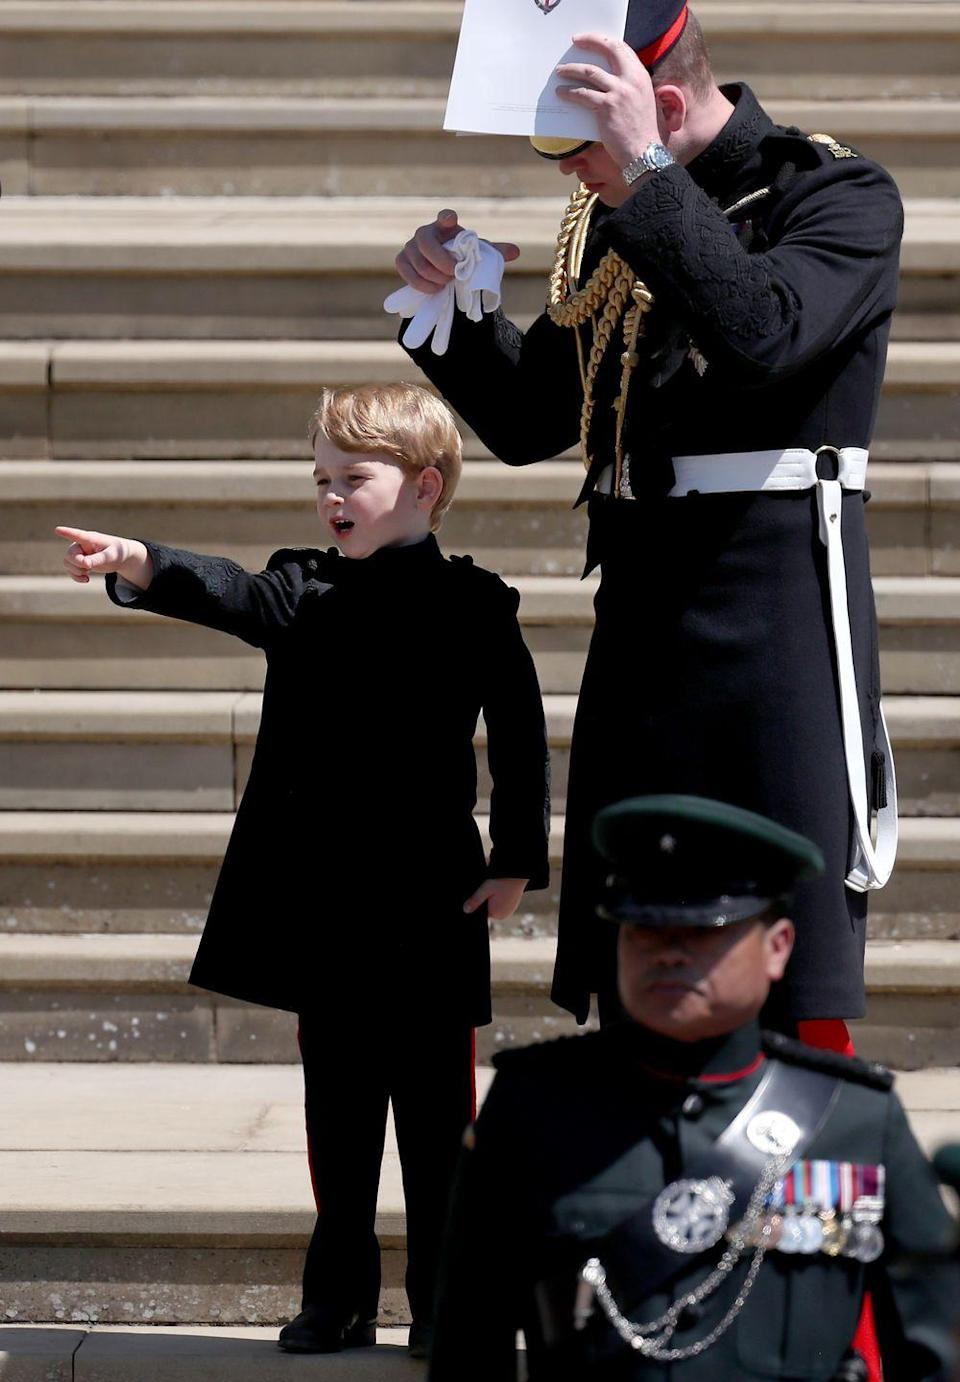 """<p>Prince George excitingly points to show something to his father Prince William outside of St. George's Chapel at Windsor Castle after the wedding of <a href=""""https://www.cosmopolitan.com/entertainment/g20760206/royal-wedding-secrets/"""" rel=""""nofollow noopener"""" target=""""_blank"""" data-ylk=""""slk:Prince Harry and Meghan Markle in May 2018"""" class=""""link rapid-noclick-resp"""">Prince Harry and Meghan Markle in May 2018</a>. The best part? They're wearing matching pants! Too cute.</p>"""